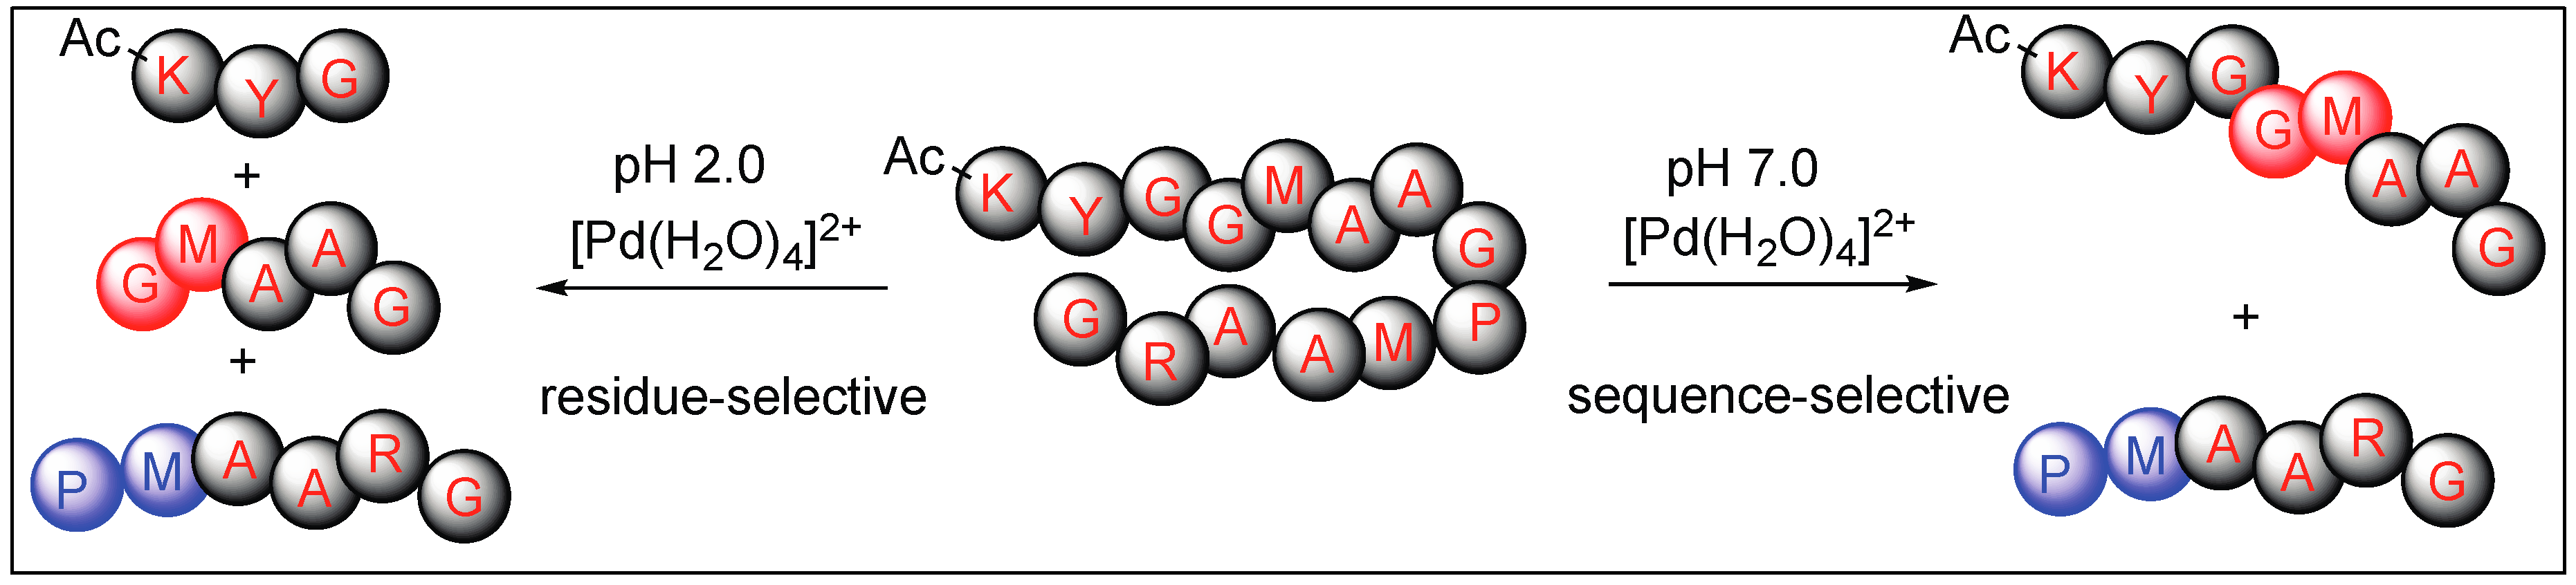 Molecules | Free Full-Text | Amide Bond Activation of